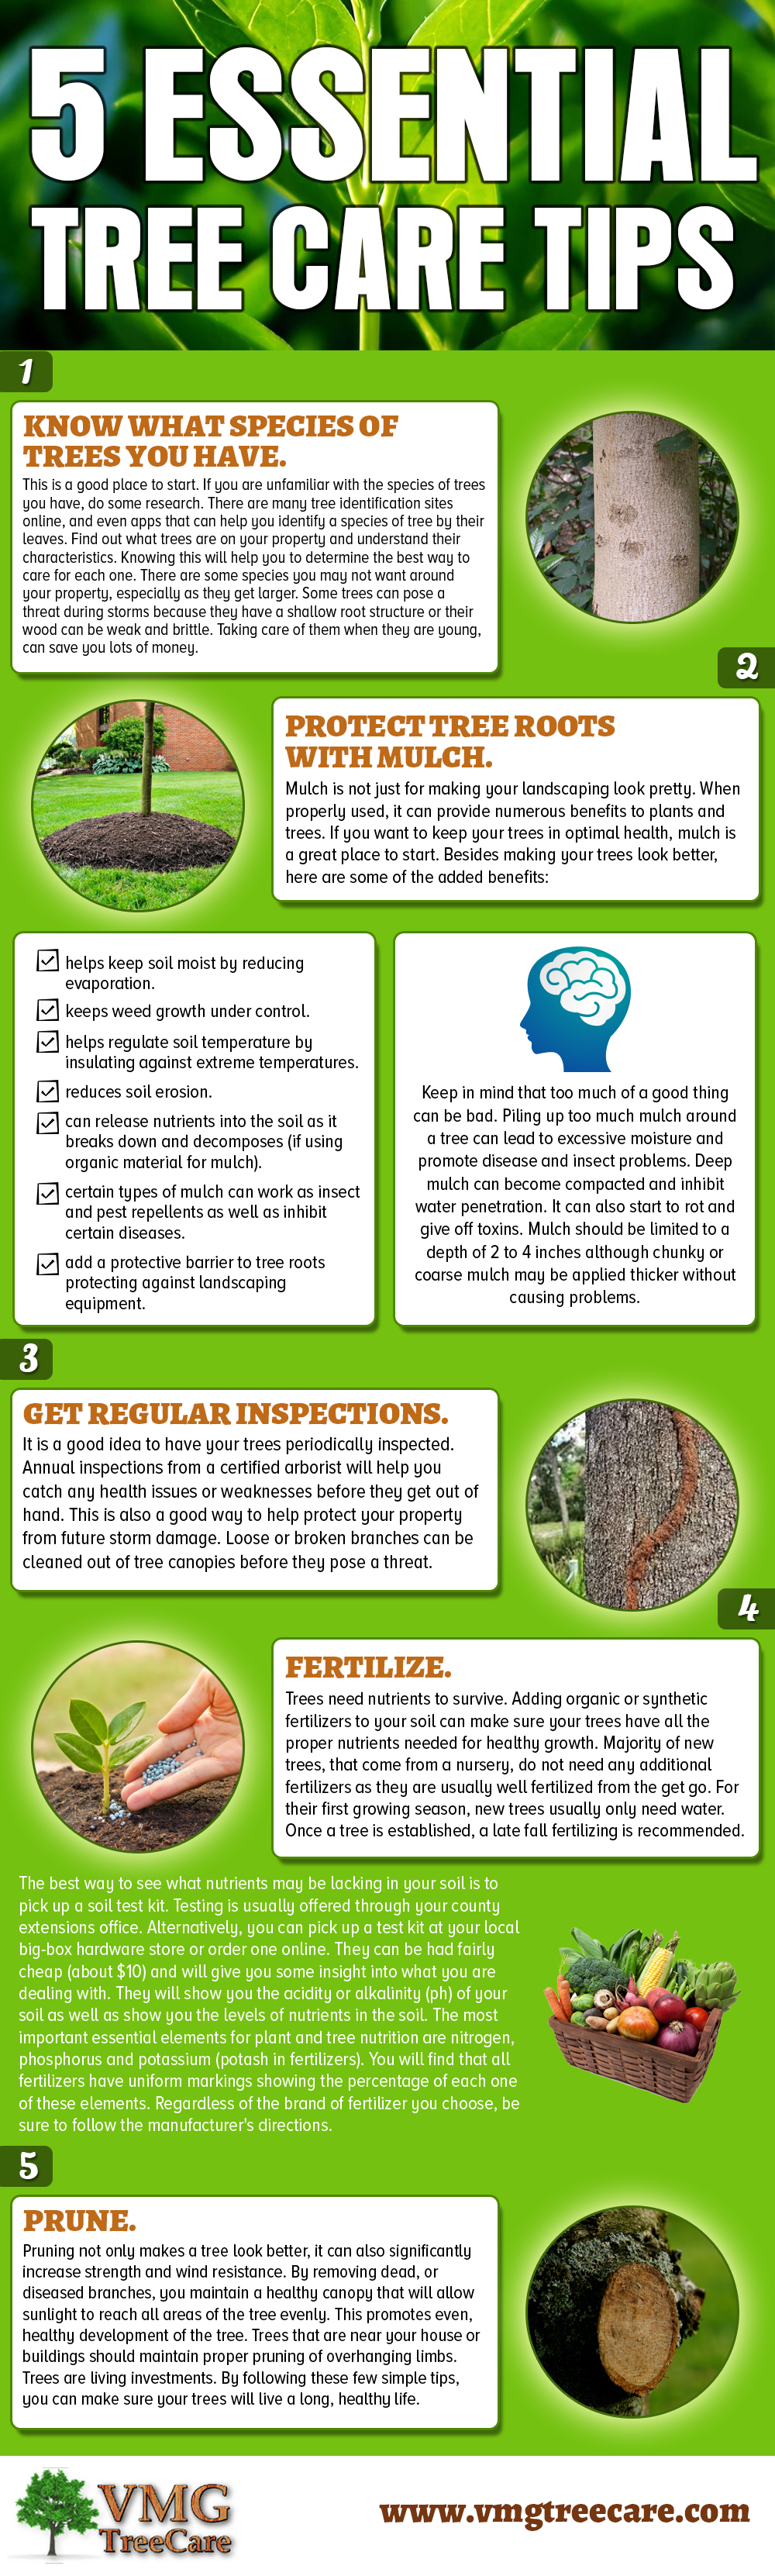 cheap tree removal near me on 5 essential tree care tips tree care tree lopping tree removal service tree care tree lopping tree removal